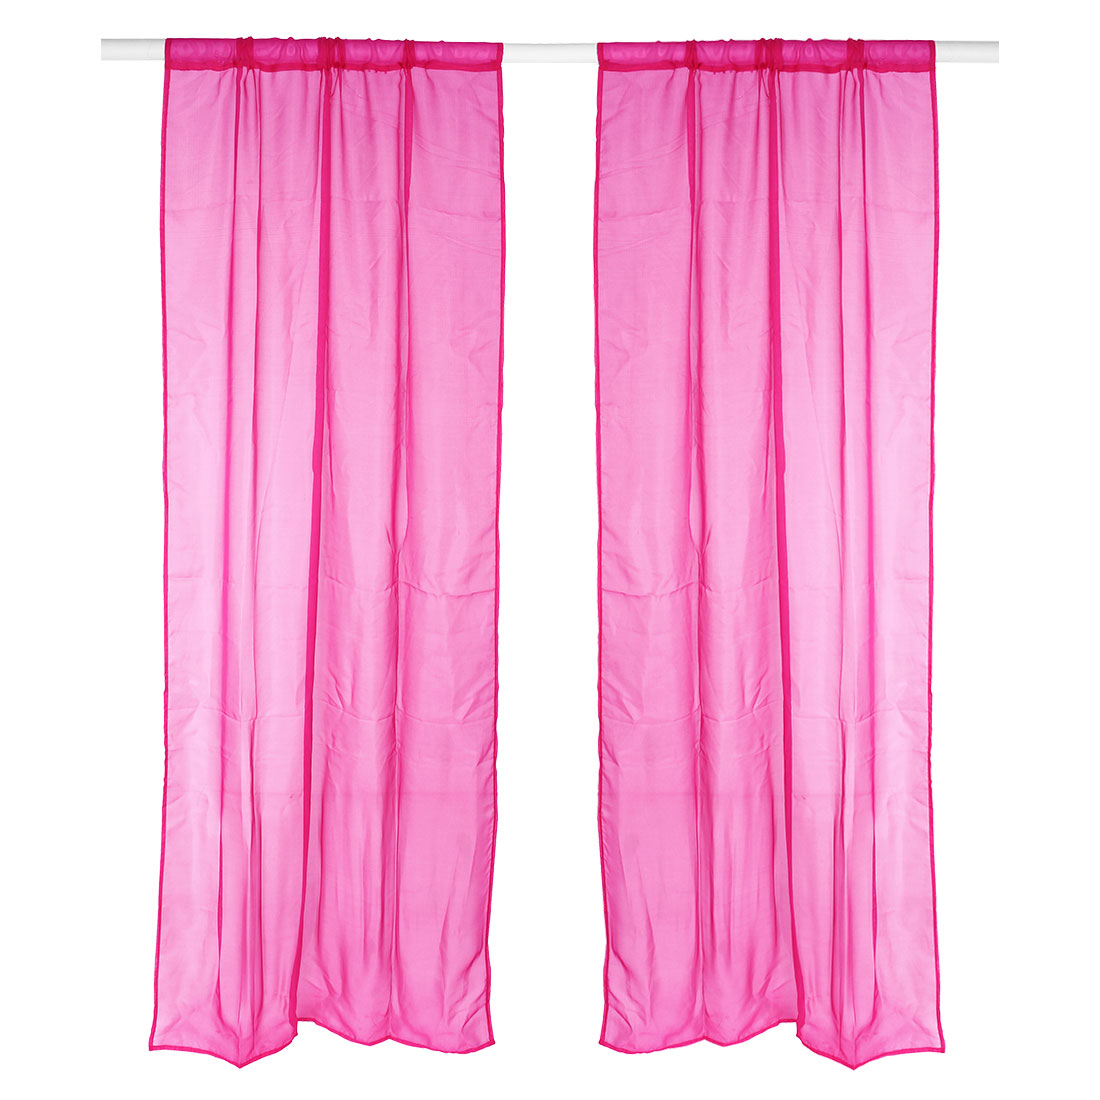 Home Bedroom Decorative Voile Panel Window Sheer Curtain Fuchsia 100 x 200cm